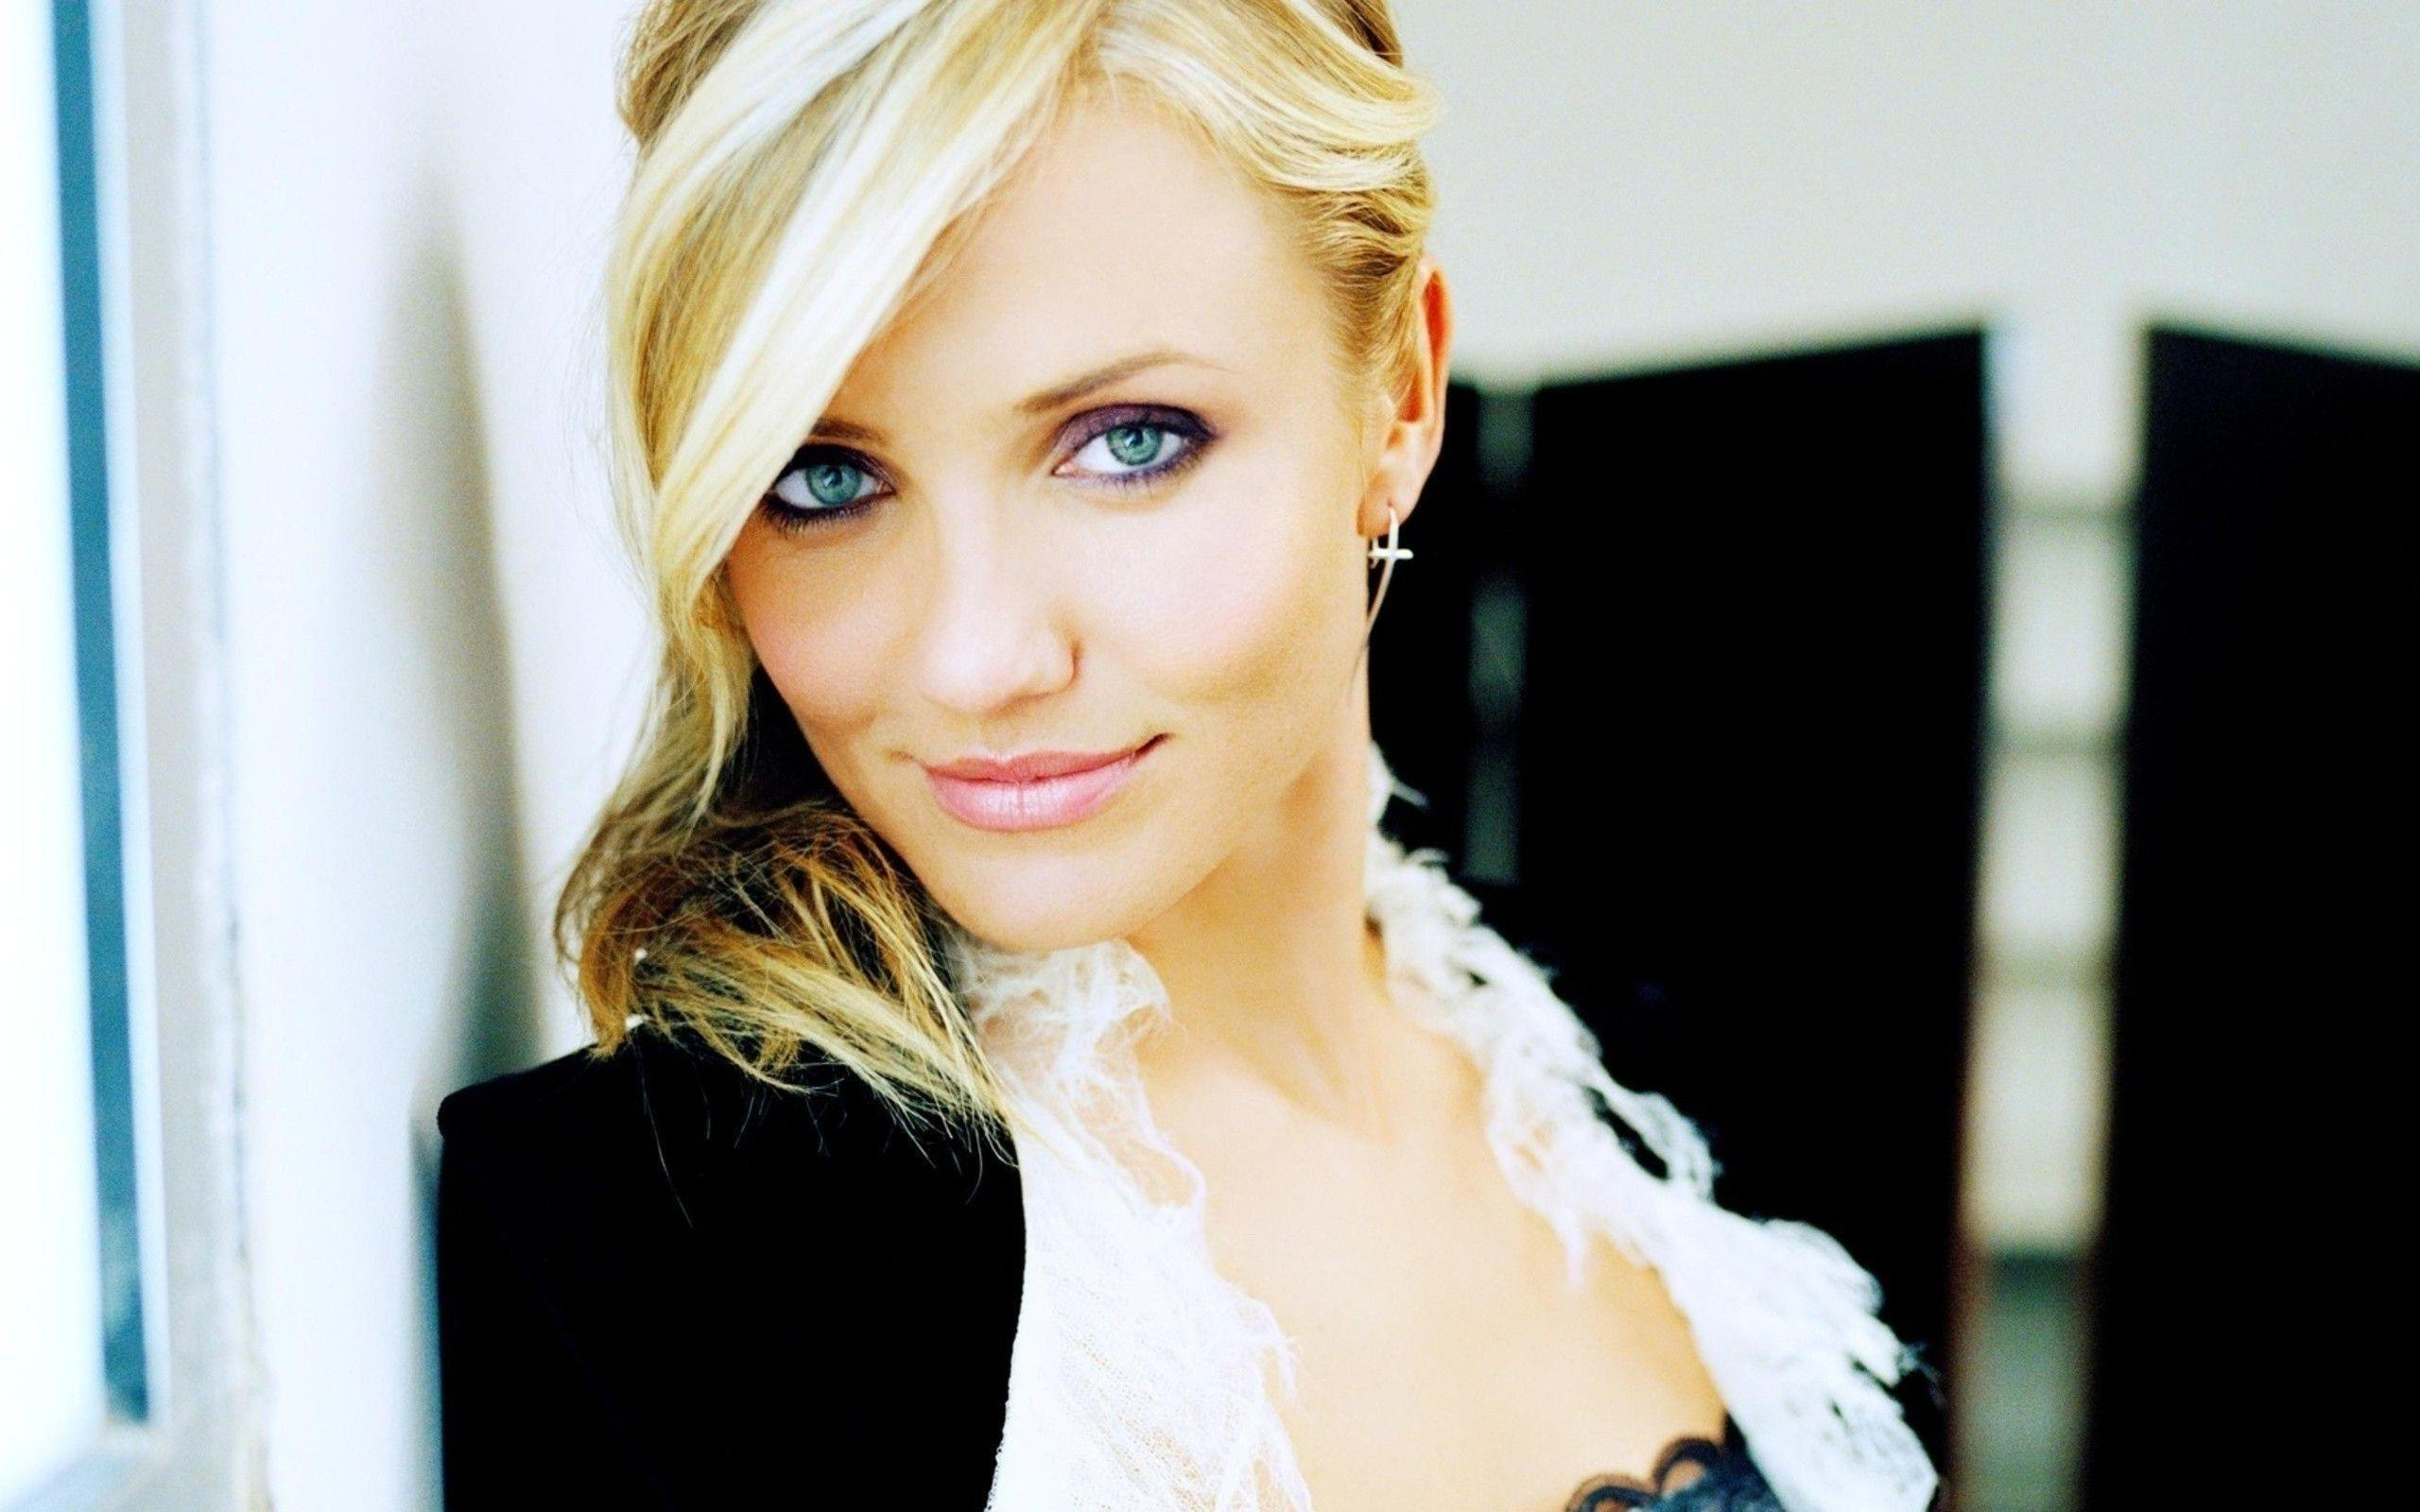 Hottest Cameron Diaz HD Wallpapers (Pictures) - All HD ...  |Cameron Diaz Wallpaper